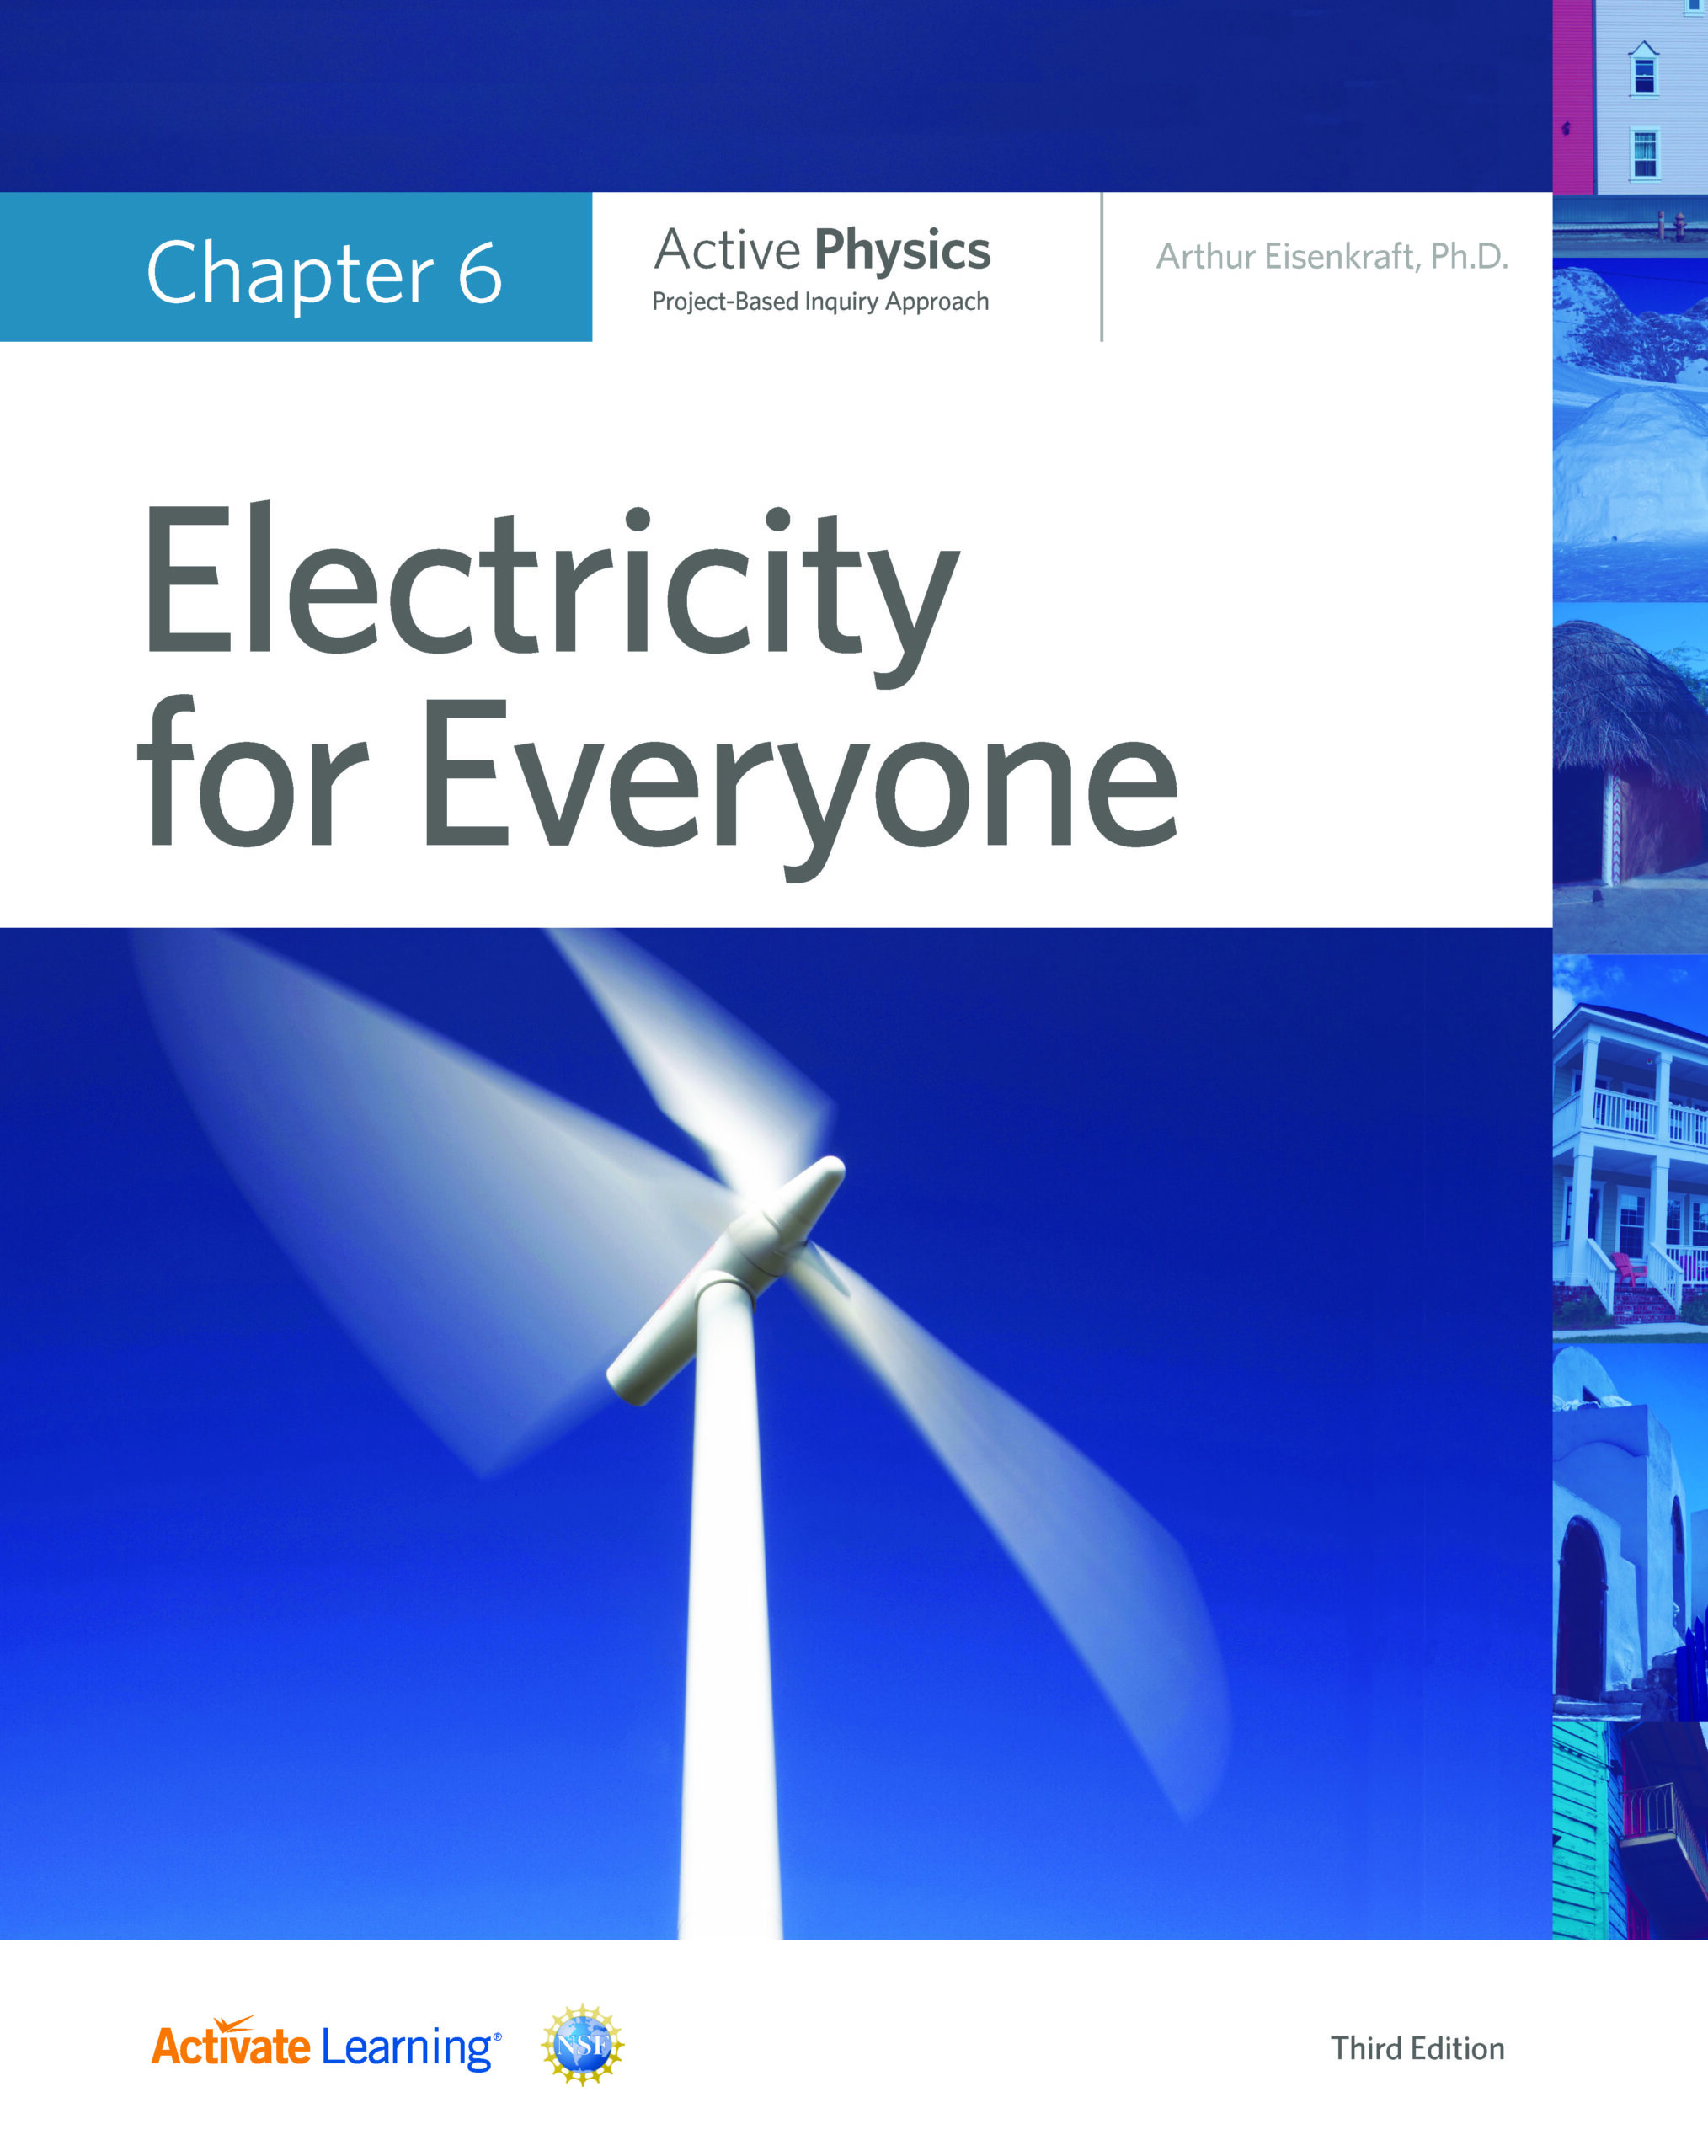 AP_6_Electricity_cover_9781682315026